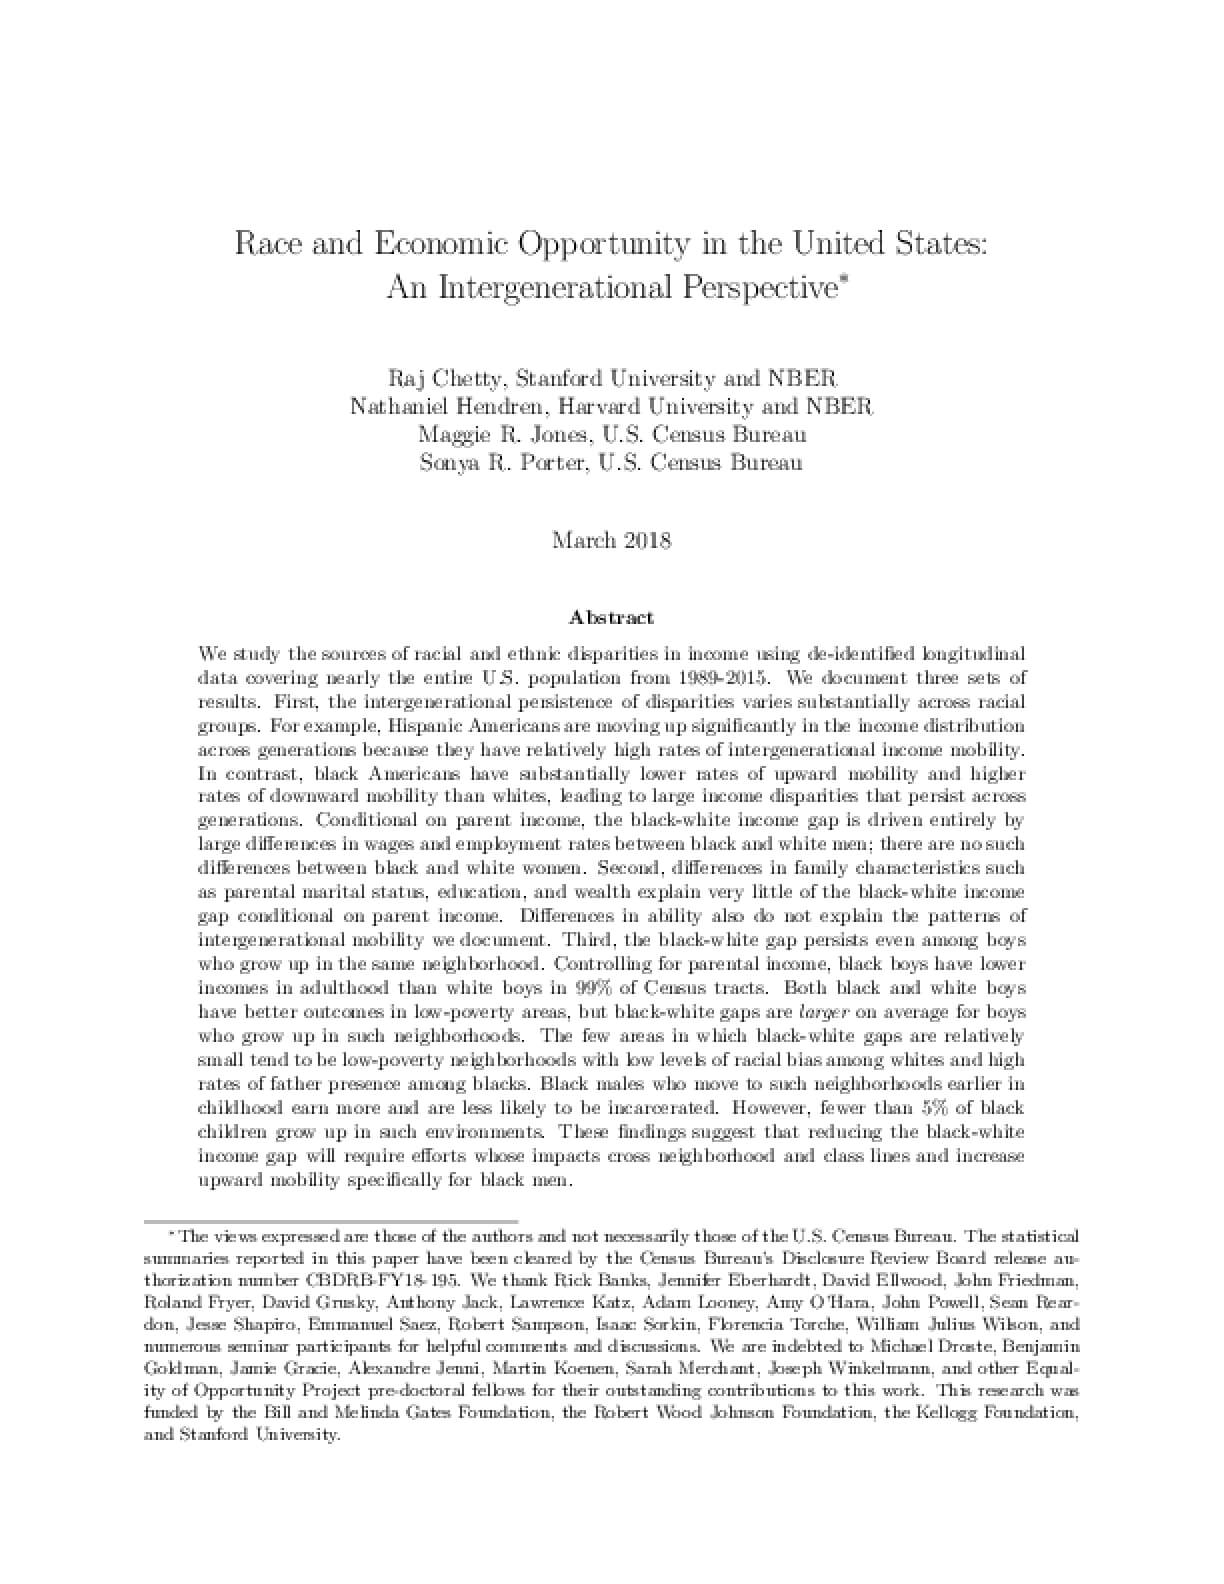 Race and Economic Opportunity in the United States: An Intergenerational Perspective